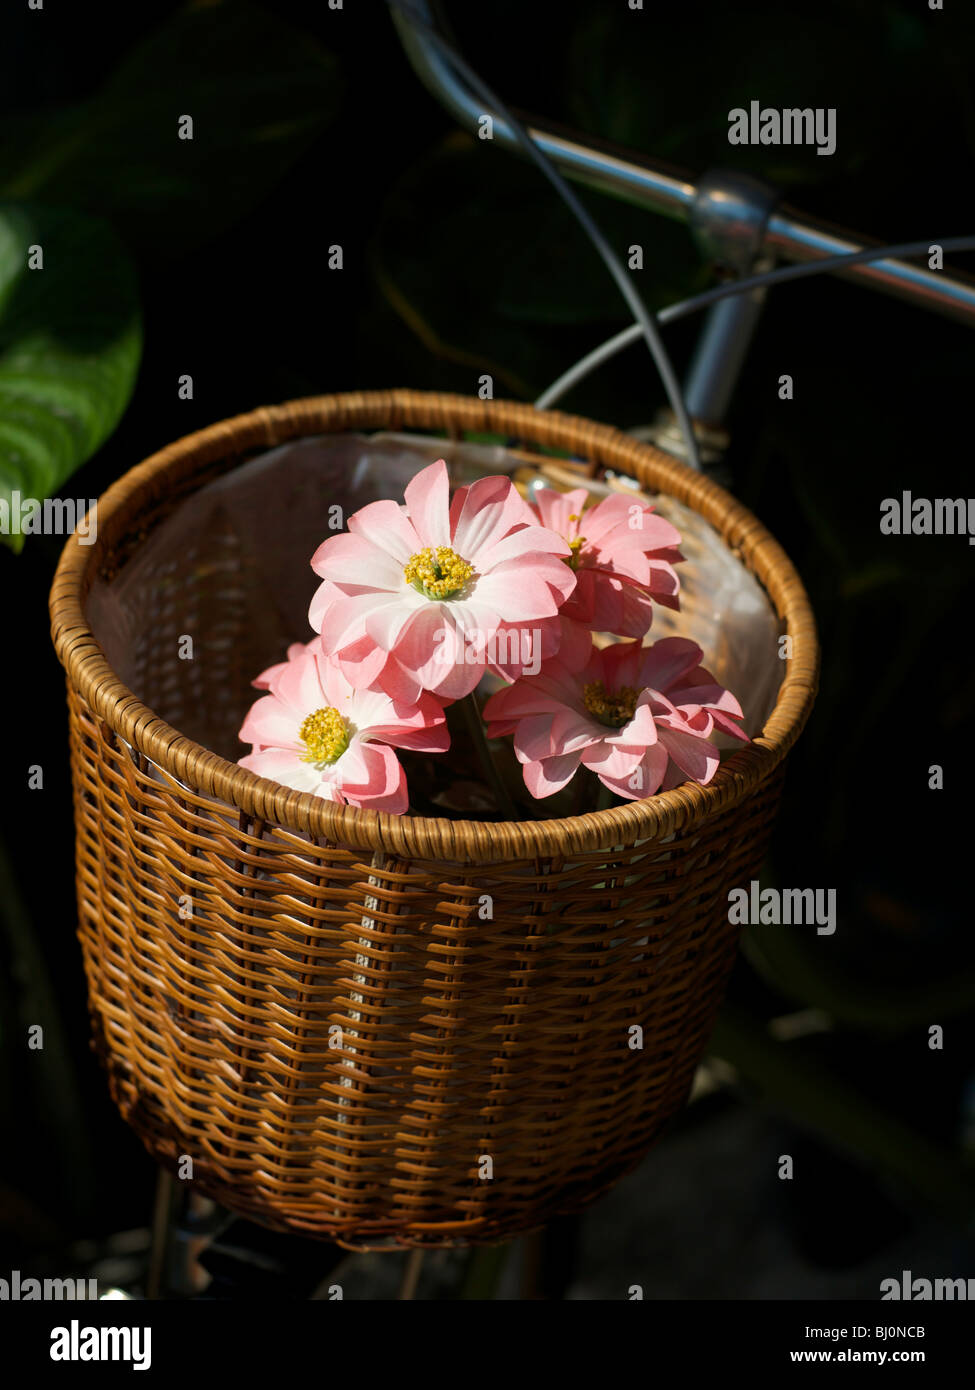 Wicker Bicycle Basket With Fake Pink Flowers Inside Stock Photo